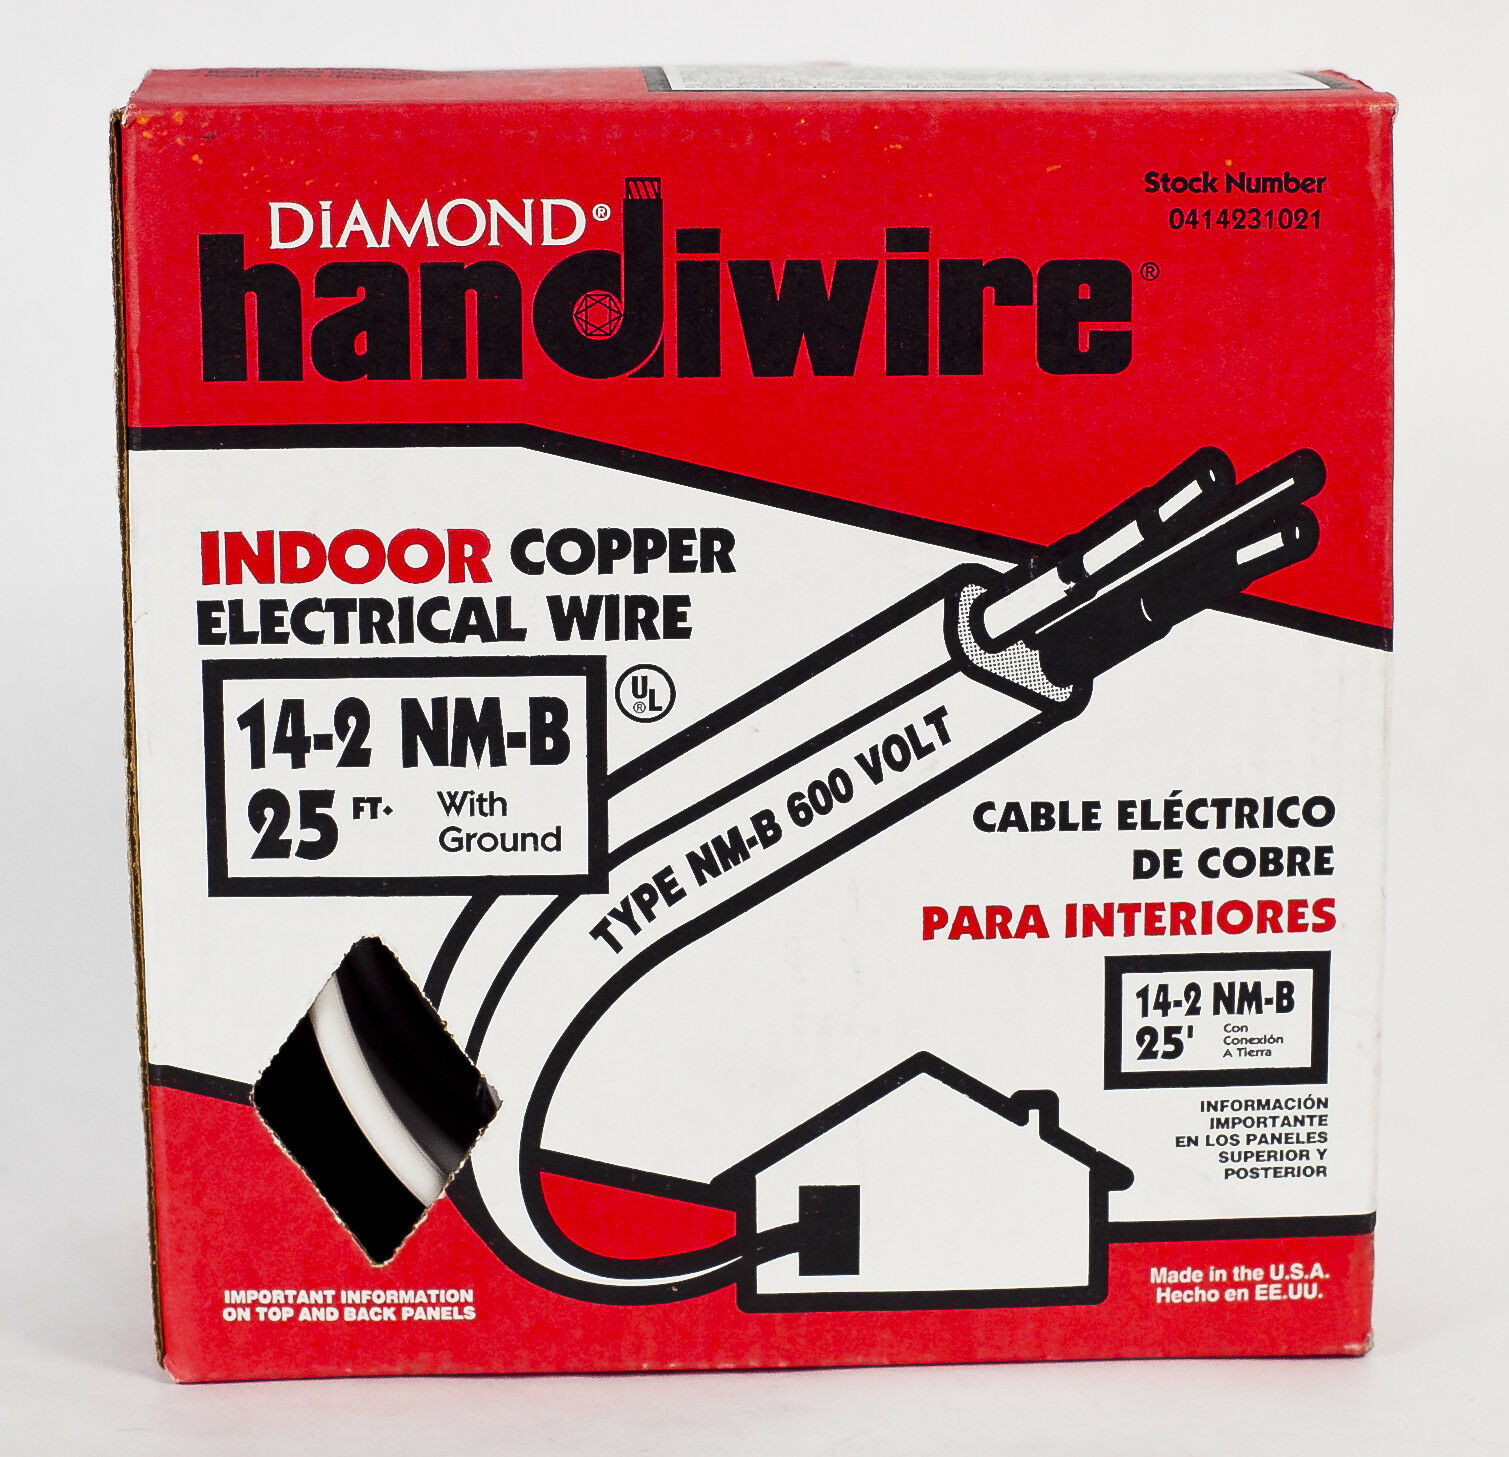 Diamond Handiwire Indoor Copper Electrical Wire 14 2 Nm B W Ground Cable Gauge Romex Simpull Norton Secured Powered By Verisign